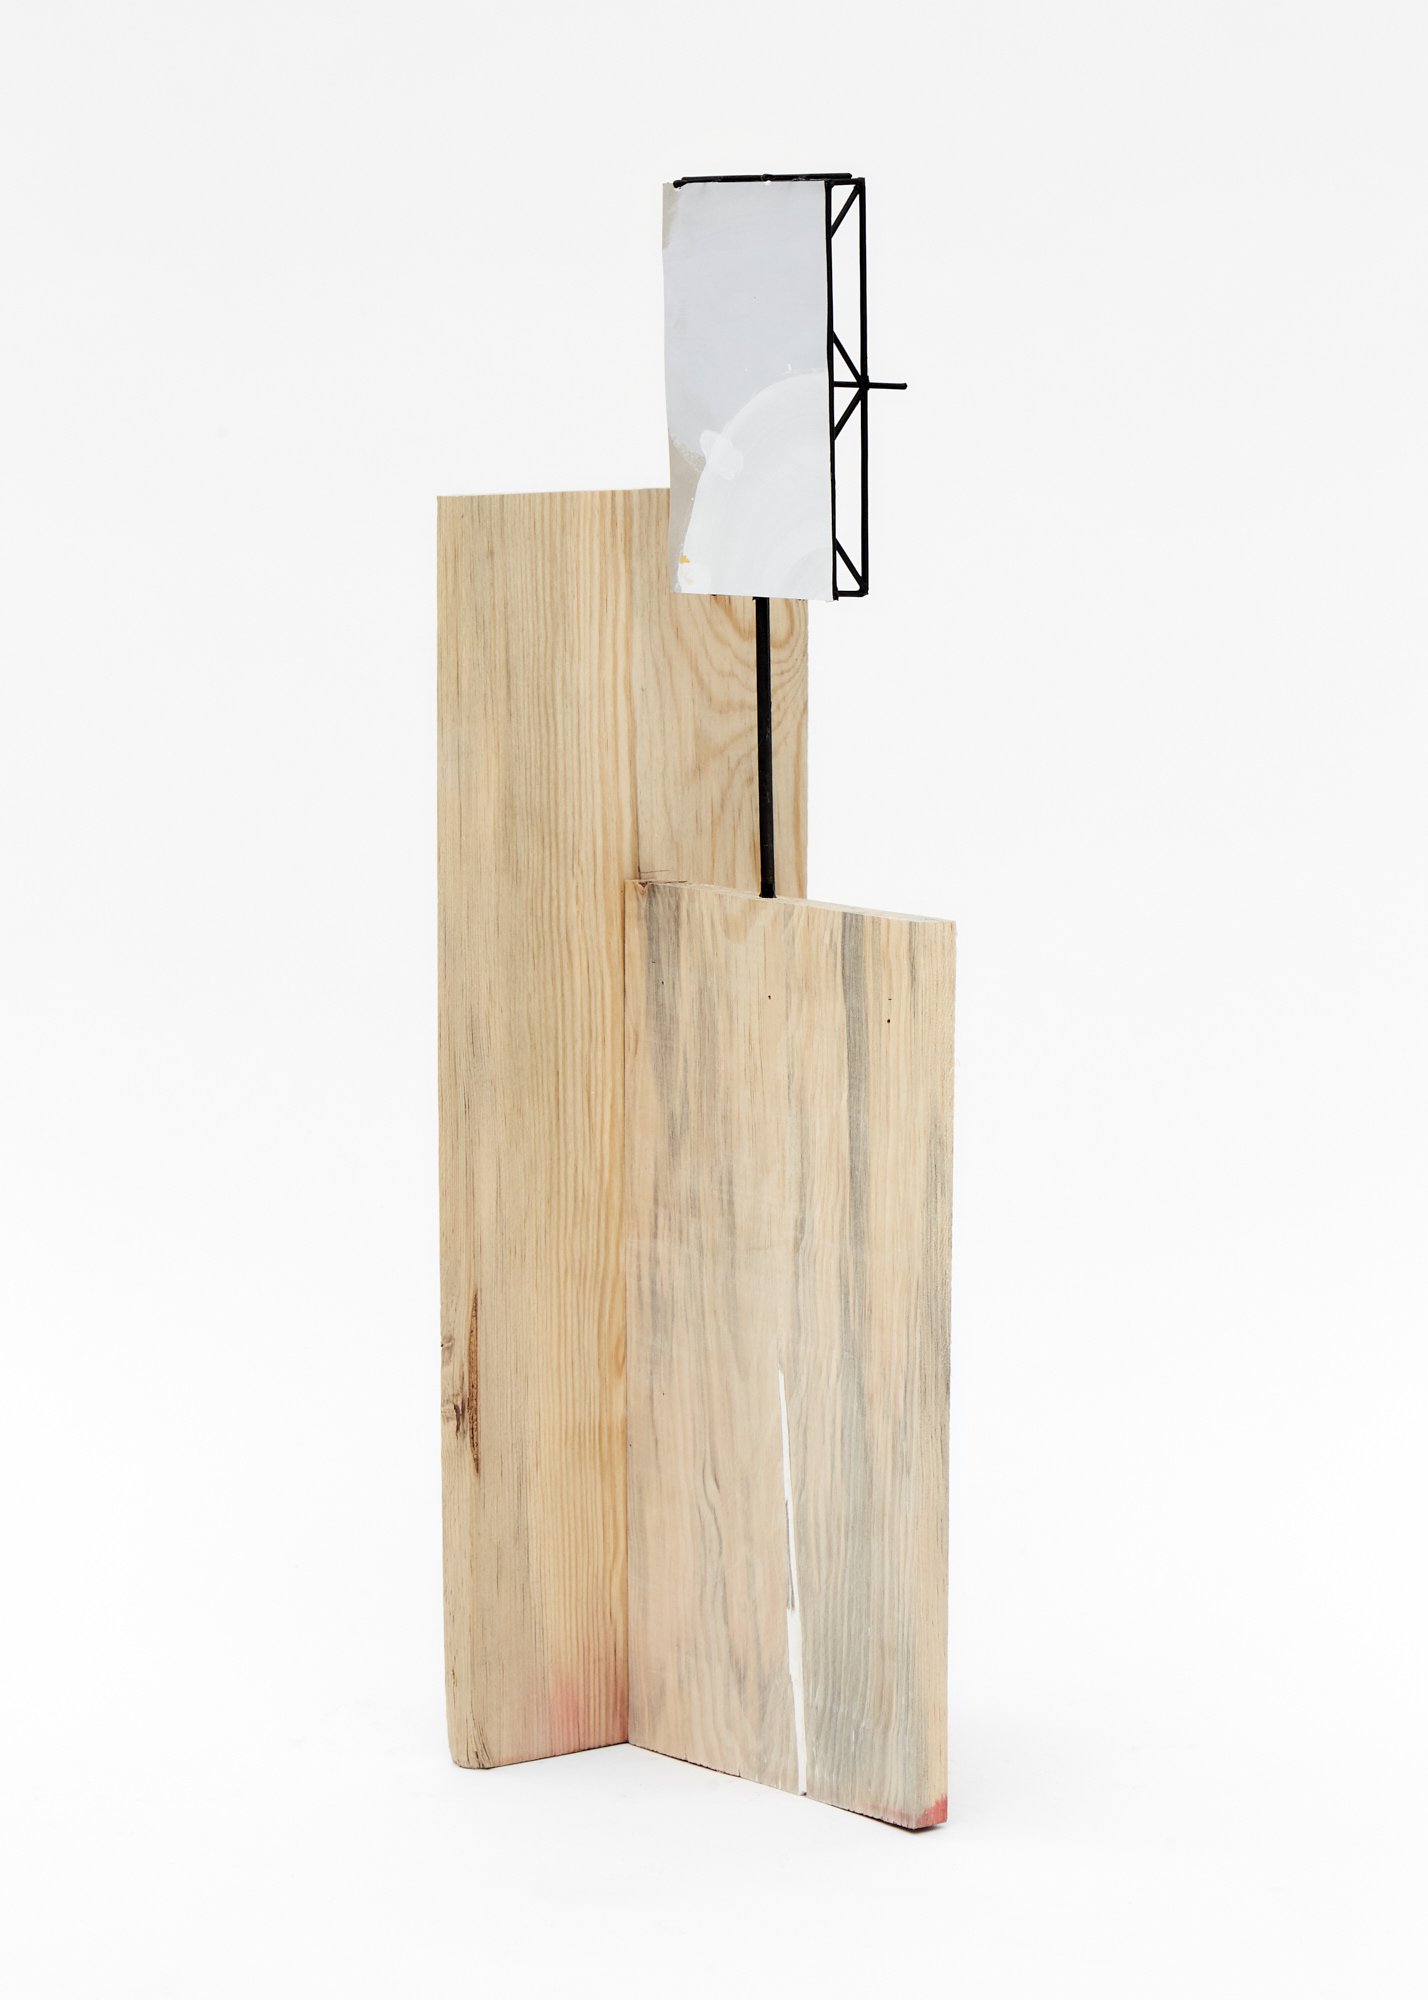 Charlie Godet Thomas, Rooftop Poem (Sow), 2020. Wood, cut section of paper palette, wooden dowels, plastic, screws, glue, acrylic paint. 69 x 21 x 19 cm.